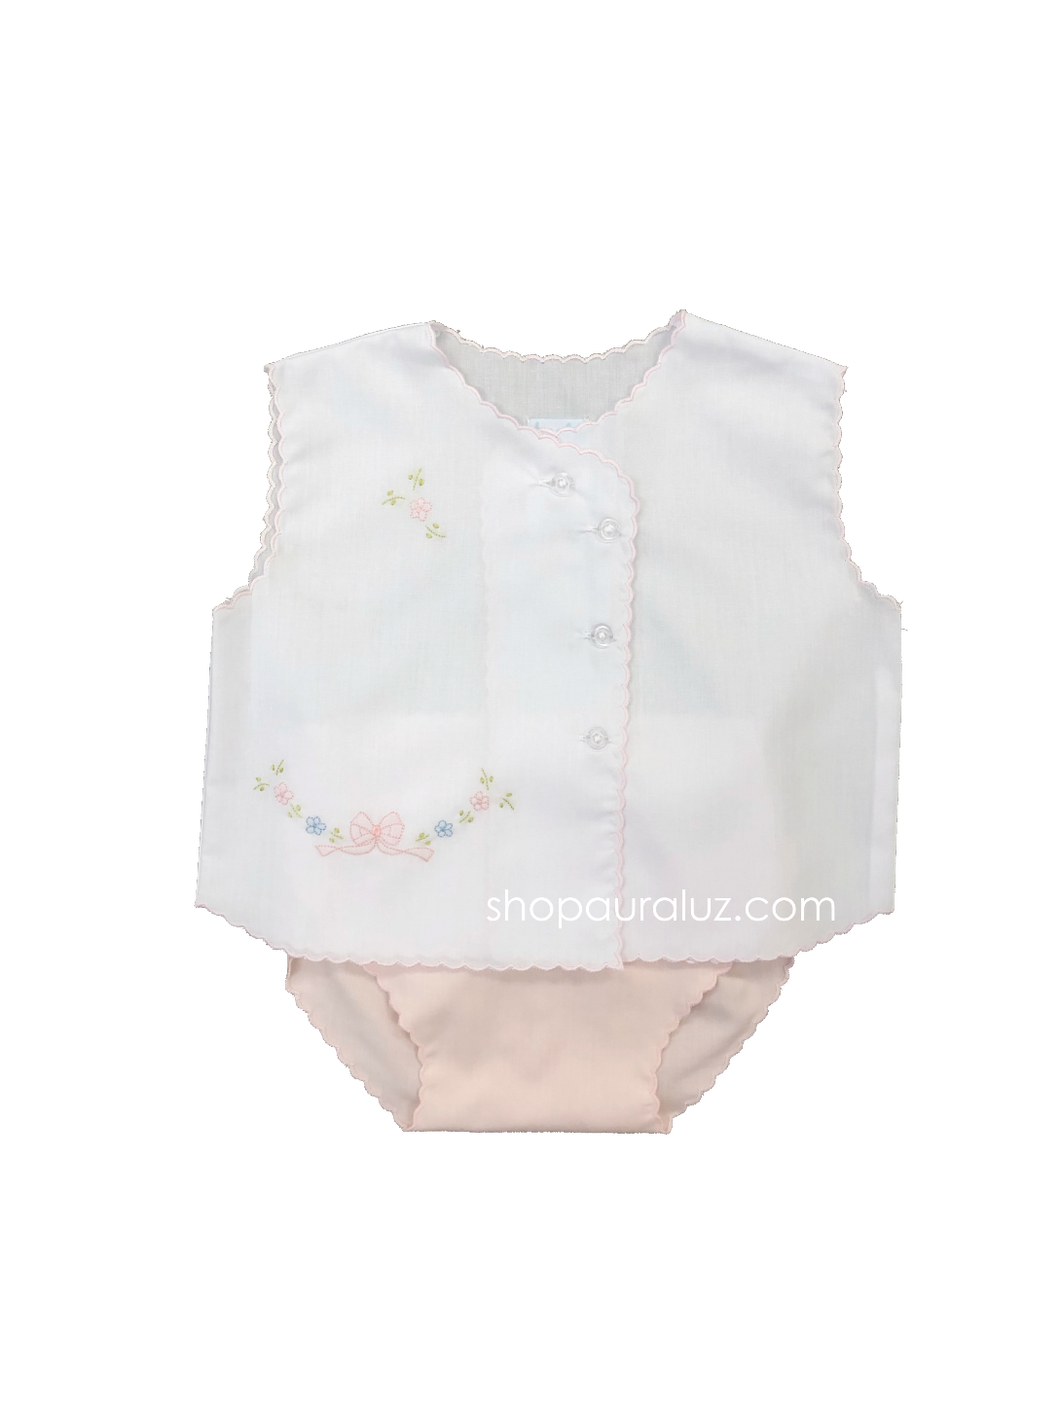 Auraluz Sleeveless Diaper shirt/cover set...White with pink scallops(pink diaper cover) and embroidered bow